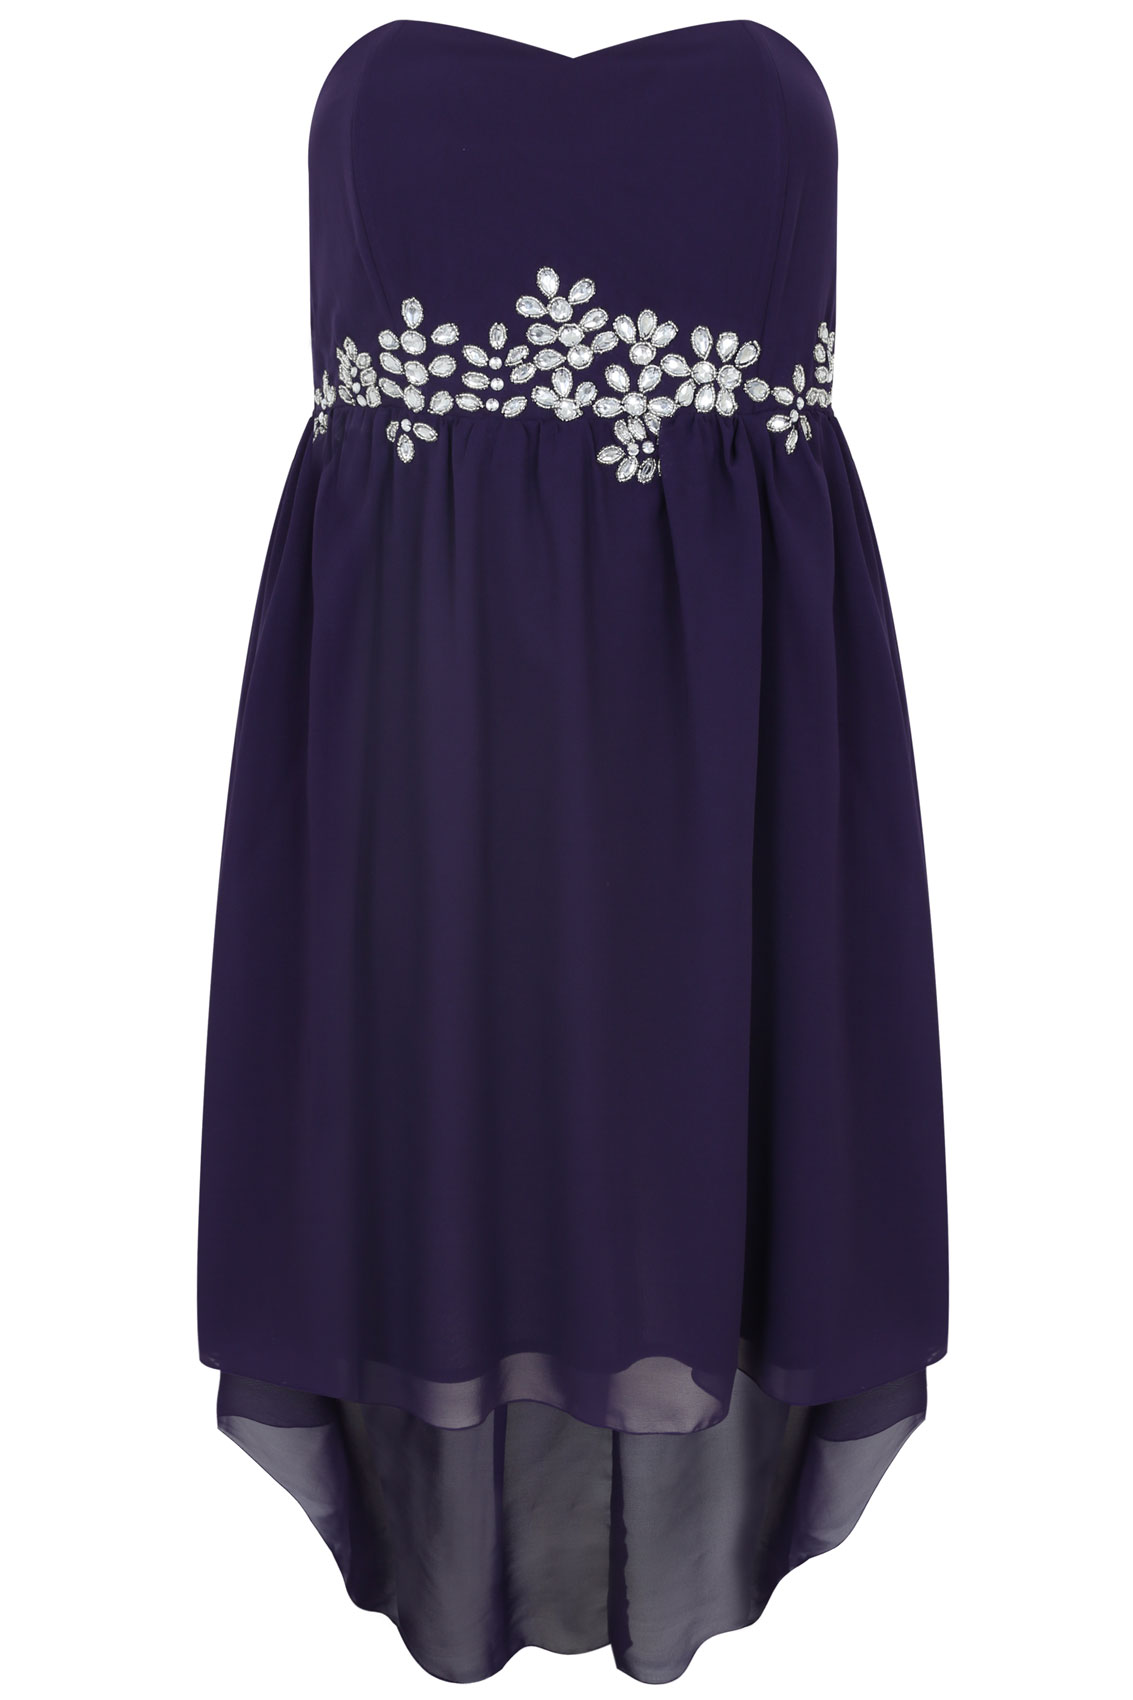 Purple Embellished Strapless Bustier Dress With Dipped Hem